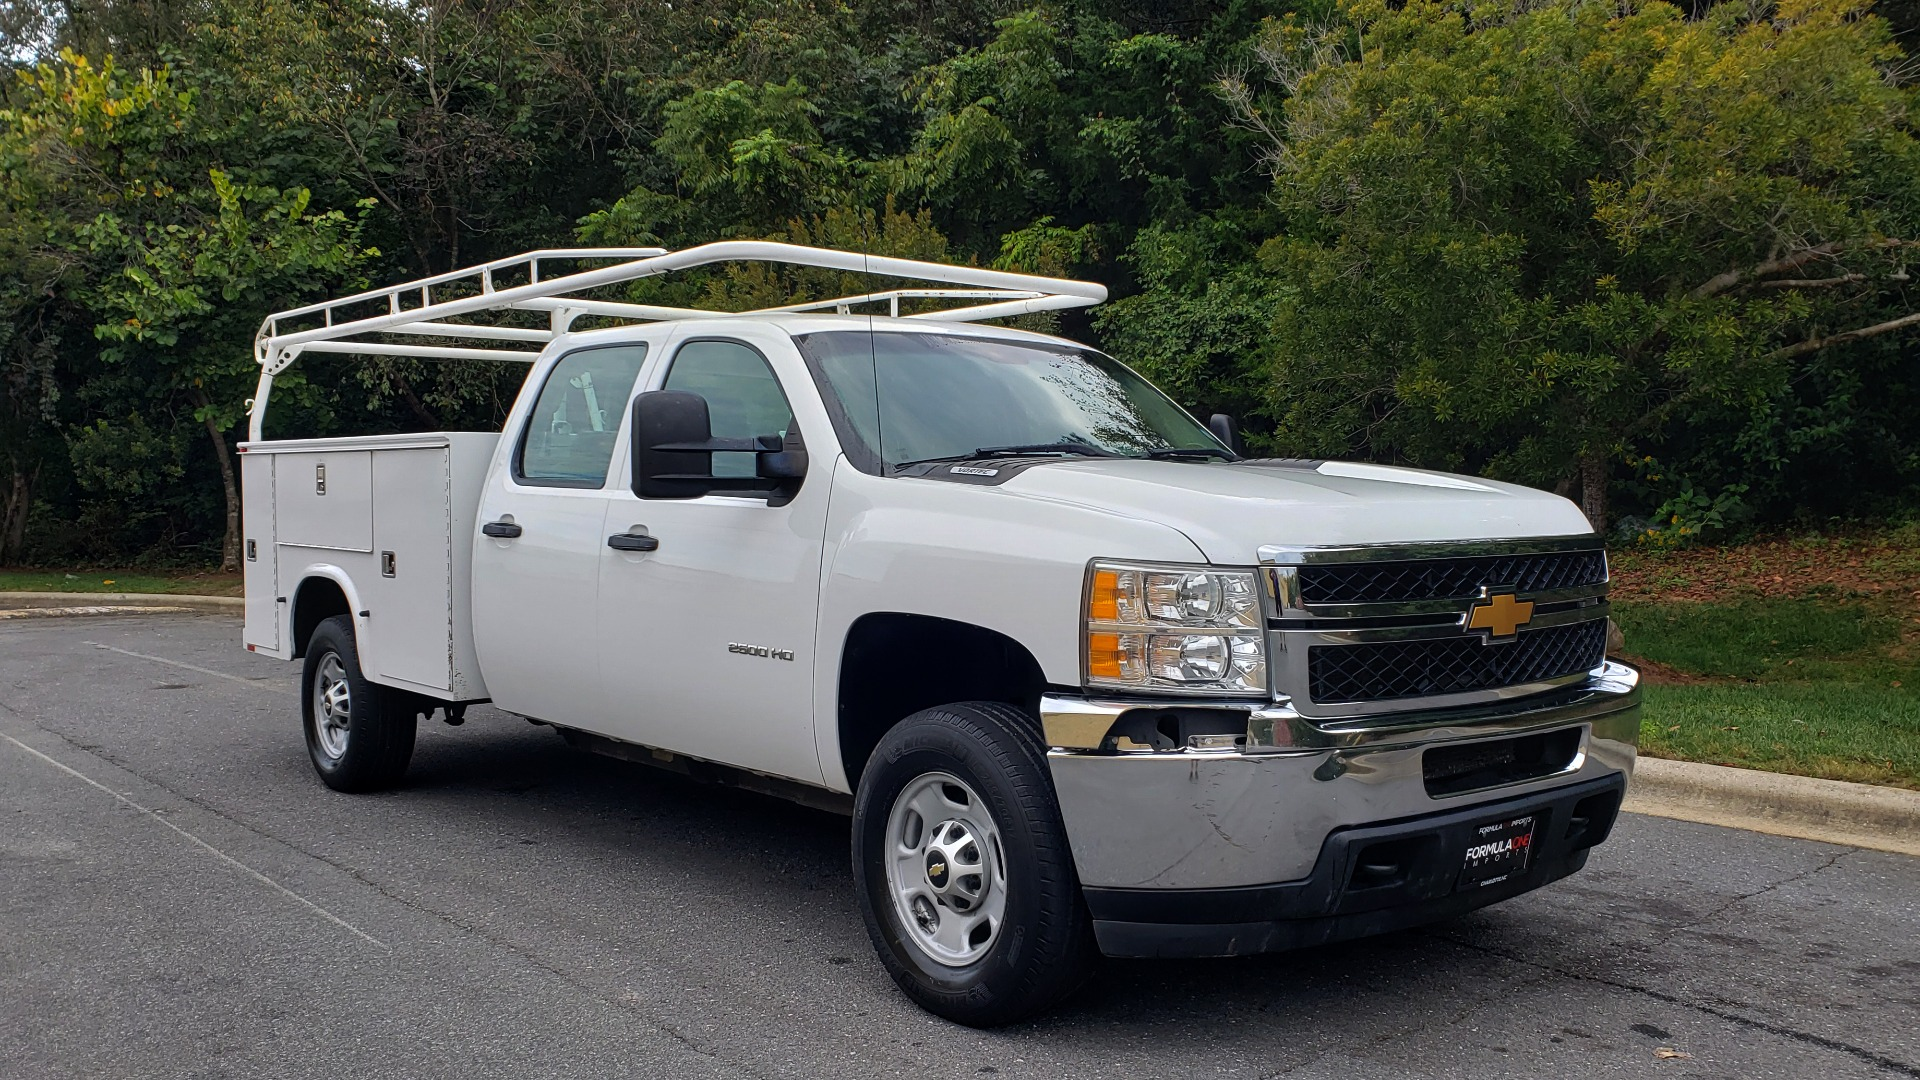 Used 2013 Chevrolet SILVERADO 2500HD WORK TRUCK 4WD / 6.0L V8 / AUTO / TOOL BOX / CLEAN for sale Sold at Formula Imports in Charlotte NC 28227 11